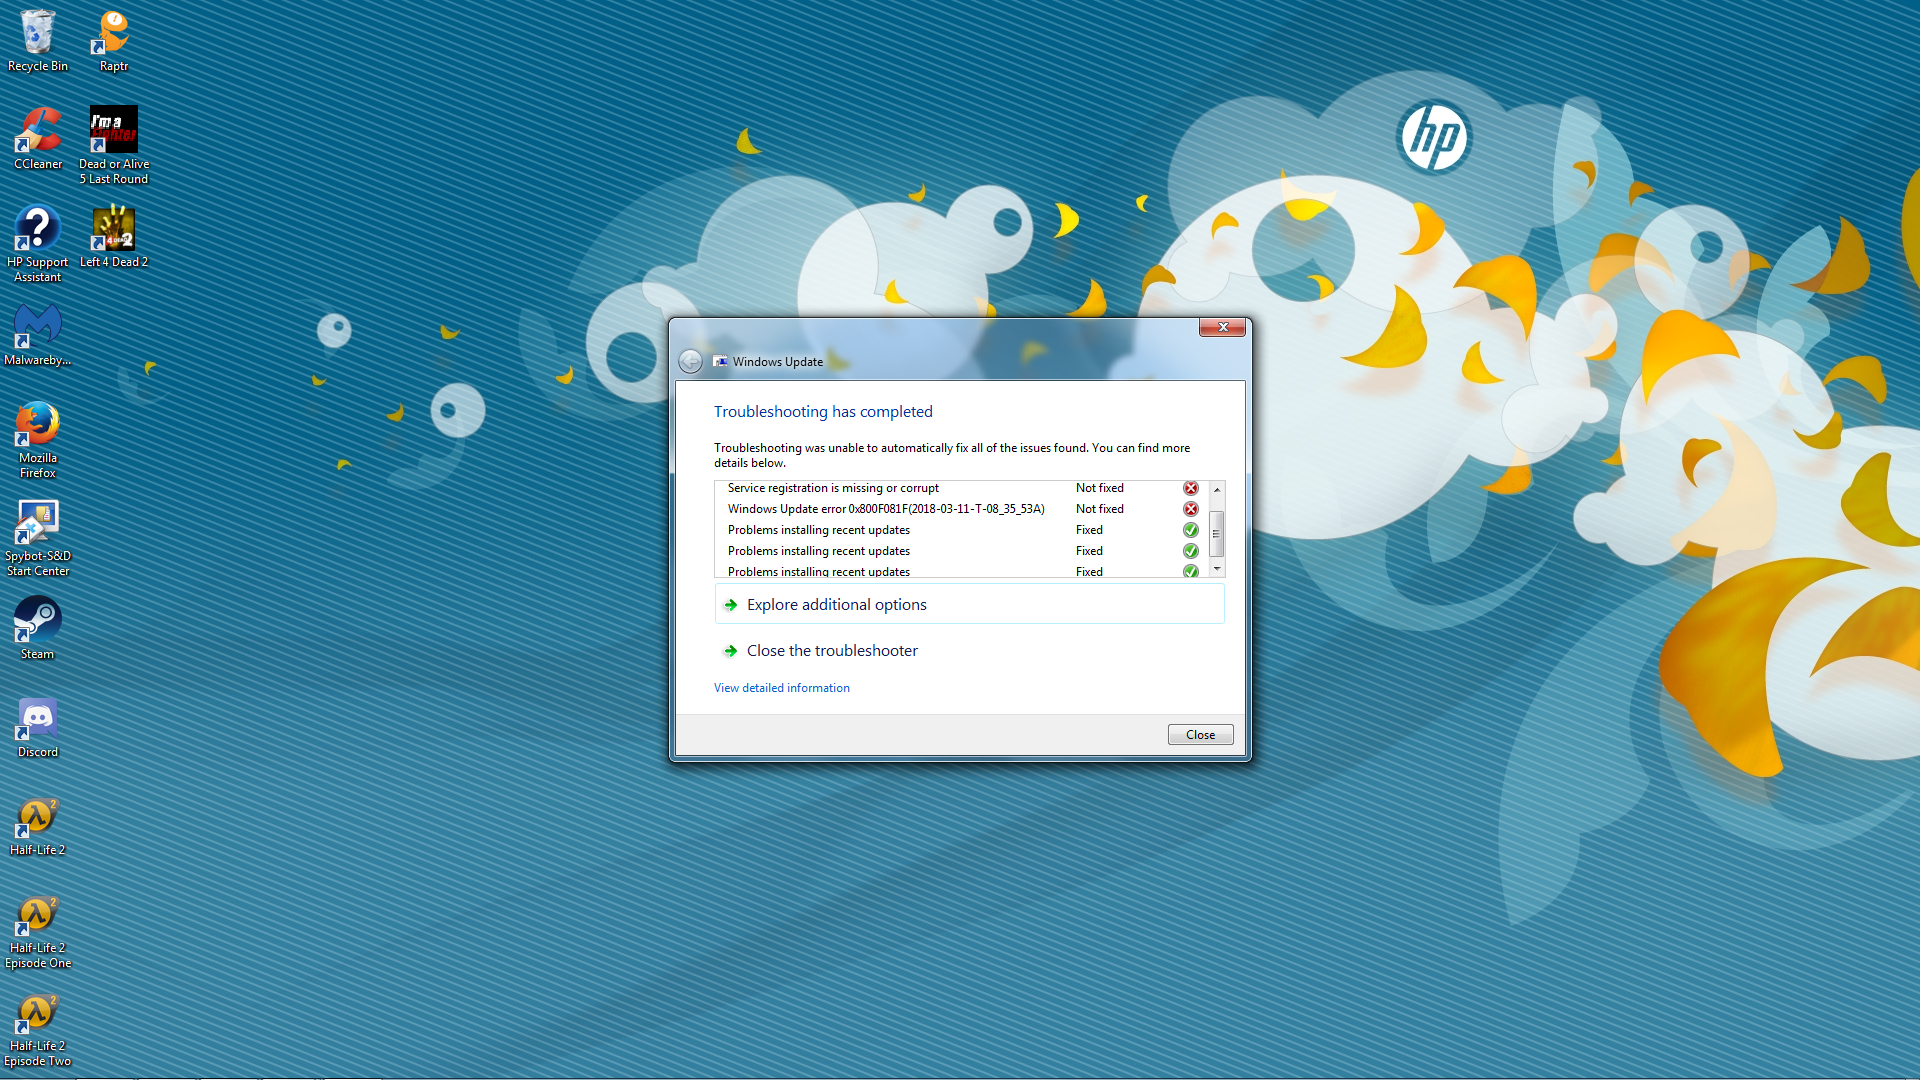 Windows 7 fails to install security update - Microsoft Community